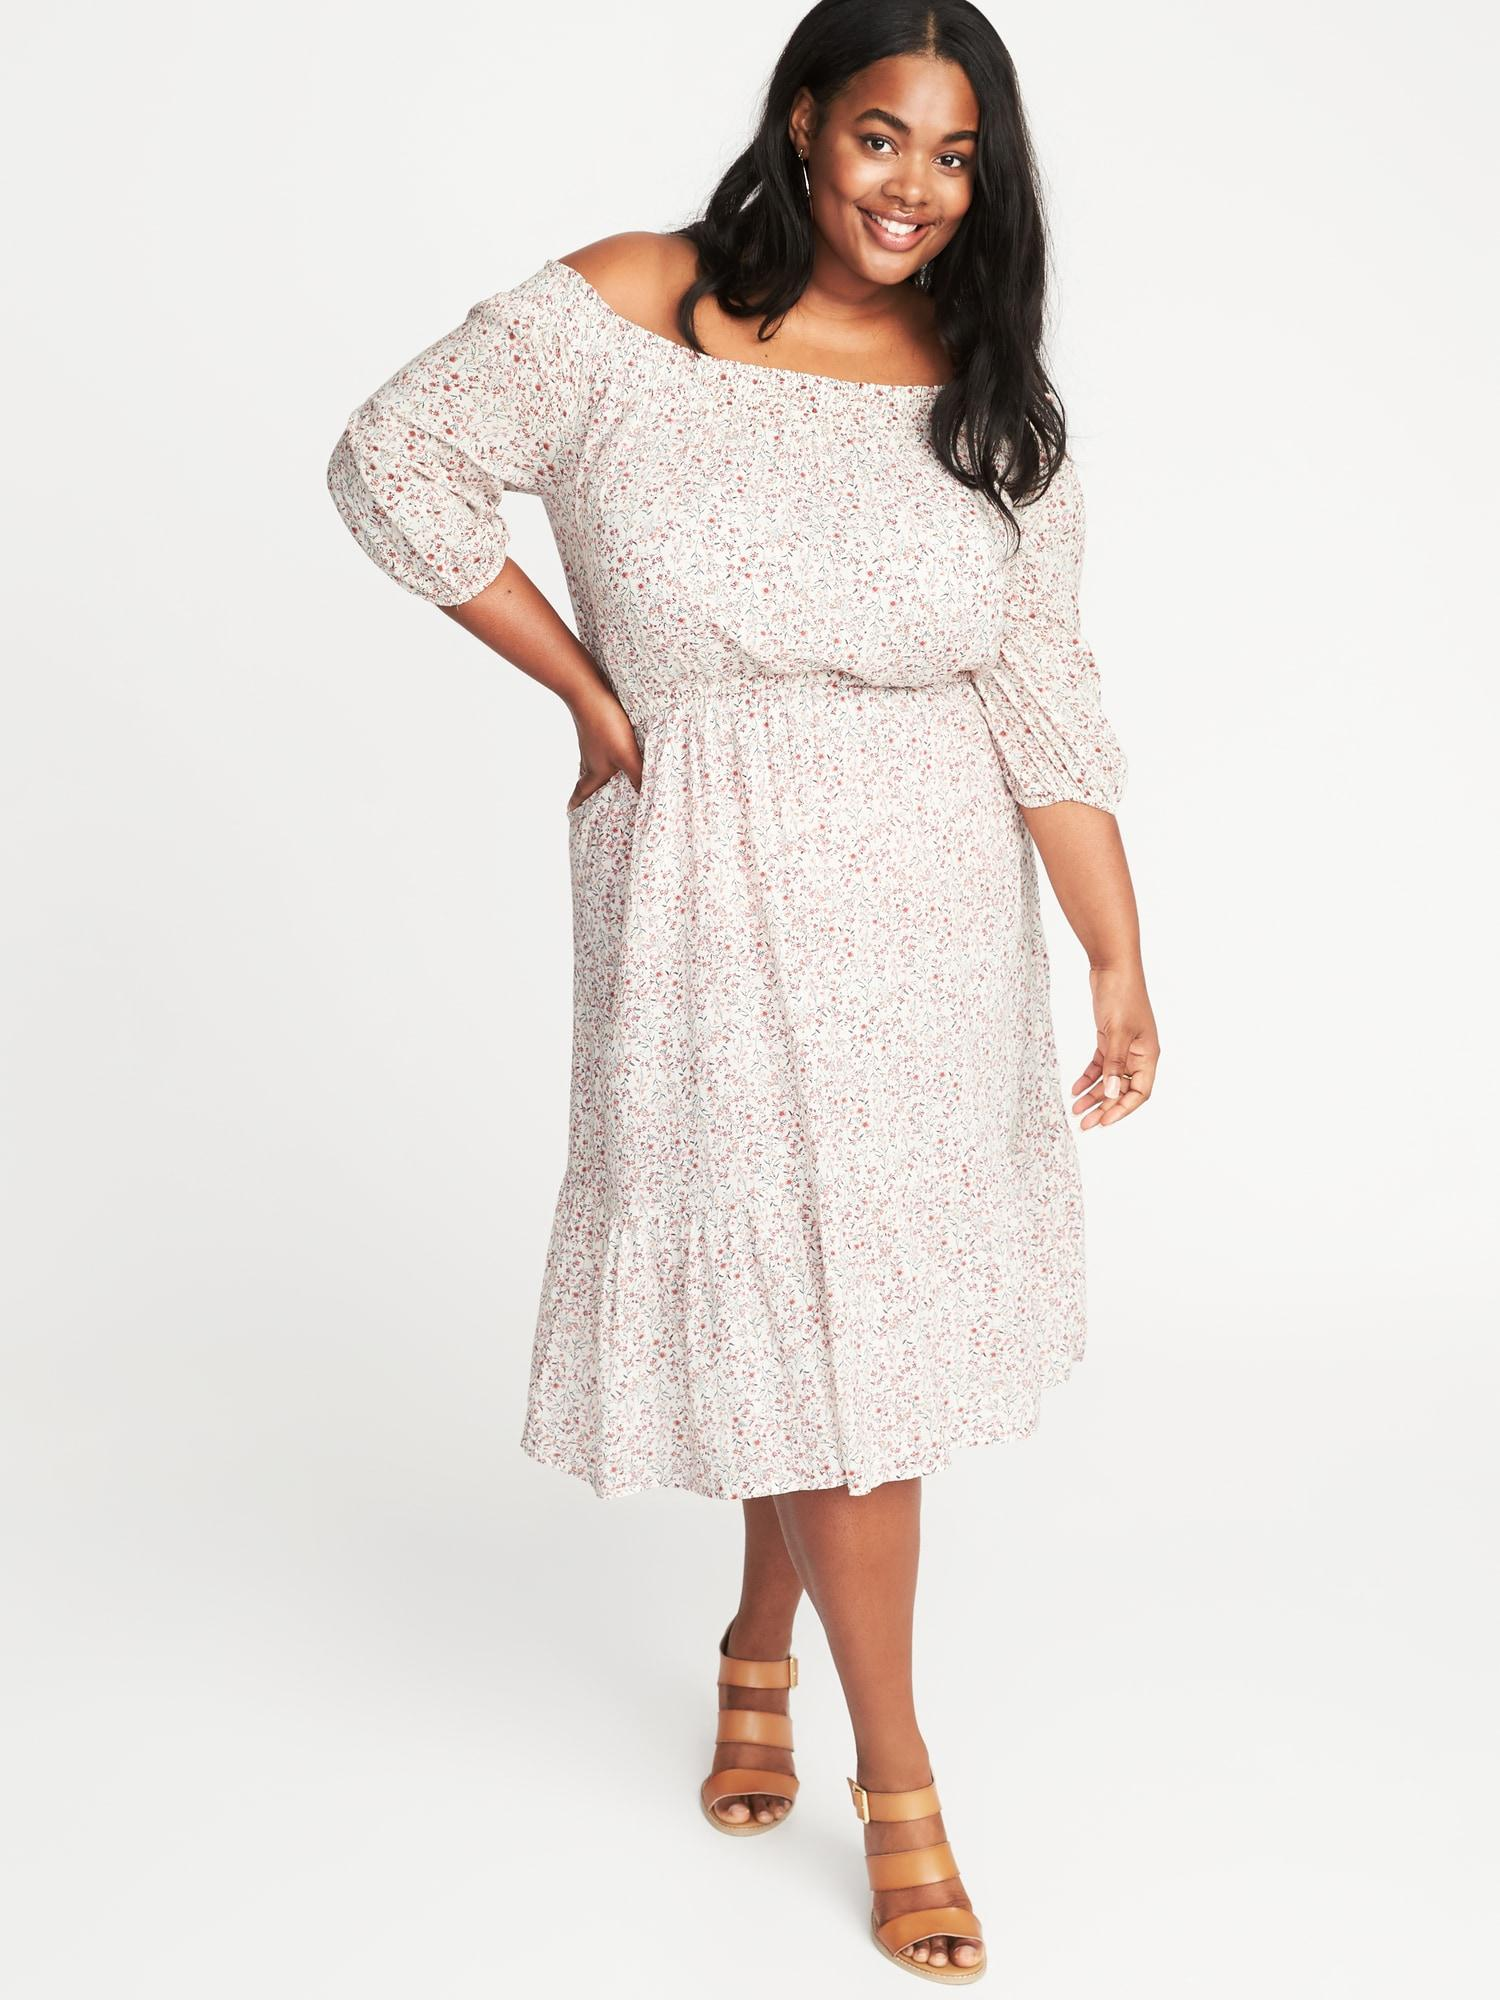 Waist-defined Off-the-shoulder Plus-size Dress